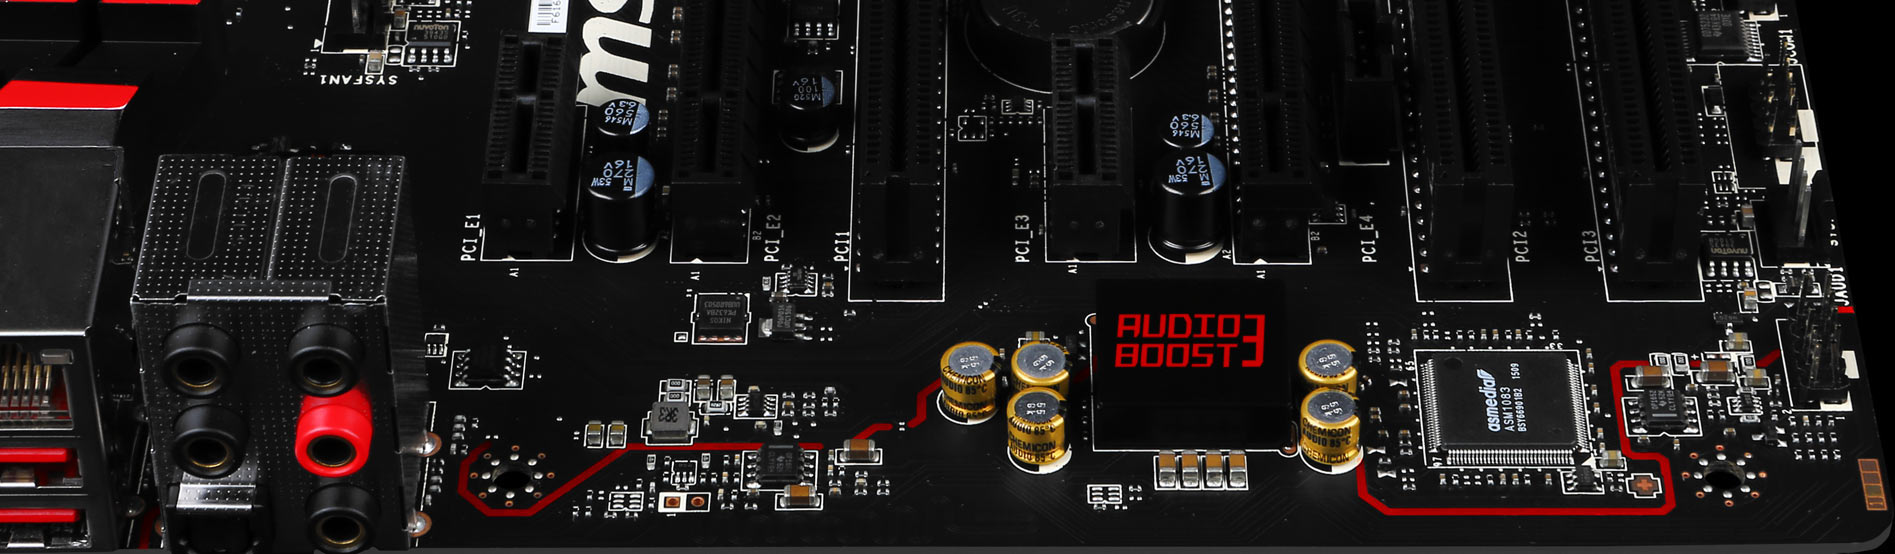 audioboost pcb top overview for z170a gaming m5 msi usa  at mifinder.co